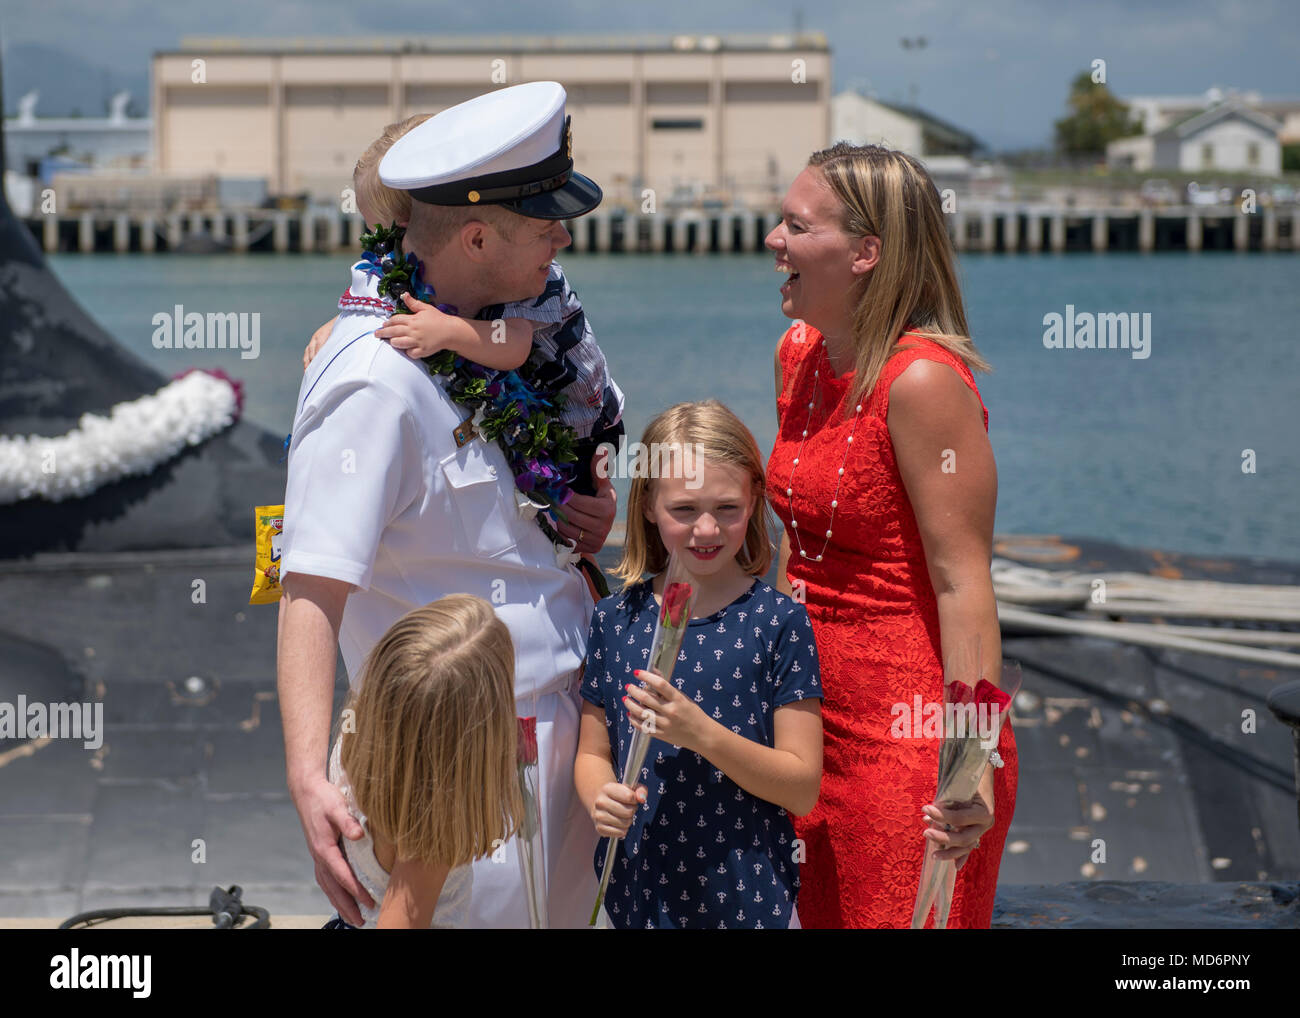 180330-N-LY160-0182 PEARL HARBOR, Hawaii (March 30, 2018) Chief Electronics Technician Nuclear Christopher Fendley, assigned to the Virginia-class fast-attack submarine USS Mississippi (SSN 782), greets his family during a homecoming ceremony in Joint Base Pearl Harbor-Hickam, March 30. Mississippi successfully completed a six-month Western Pacific deployment. (U.S. Navy photo by Mass Communication Specialist 2nd Class Michael H. Lee/ Released) - Stock Image